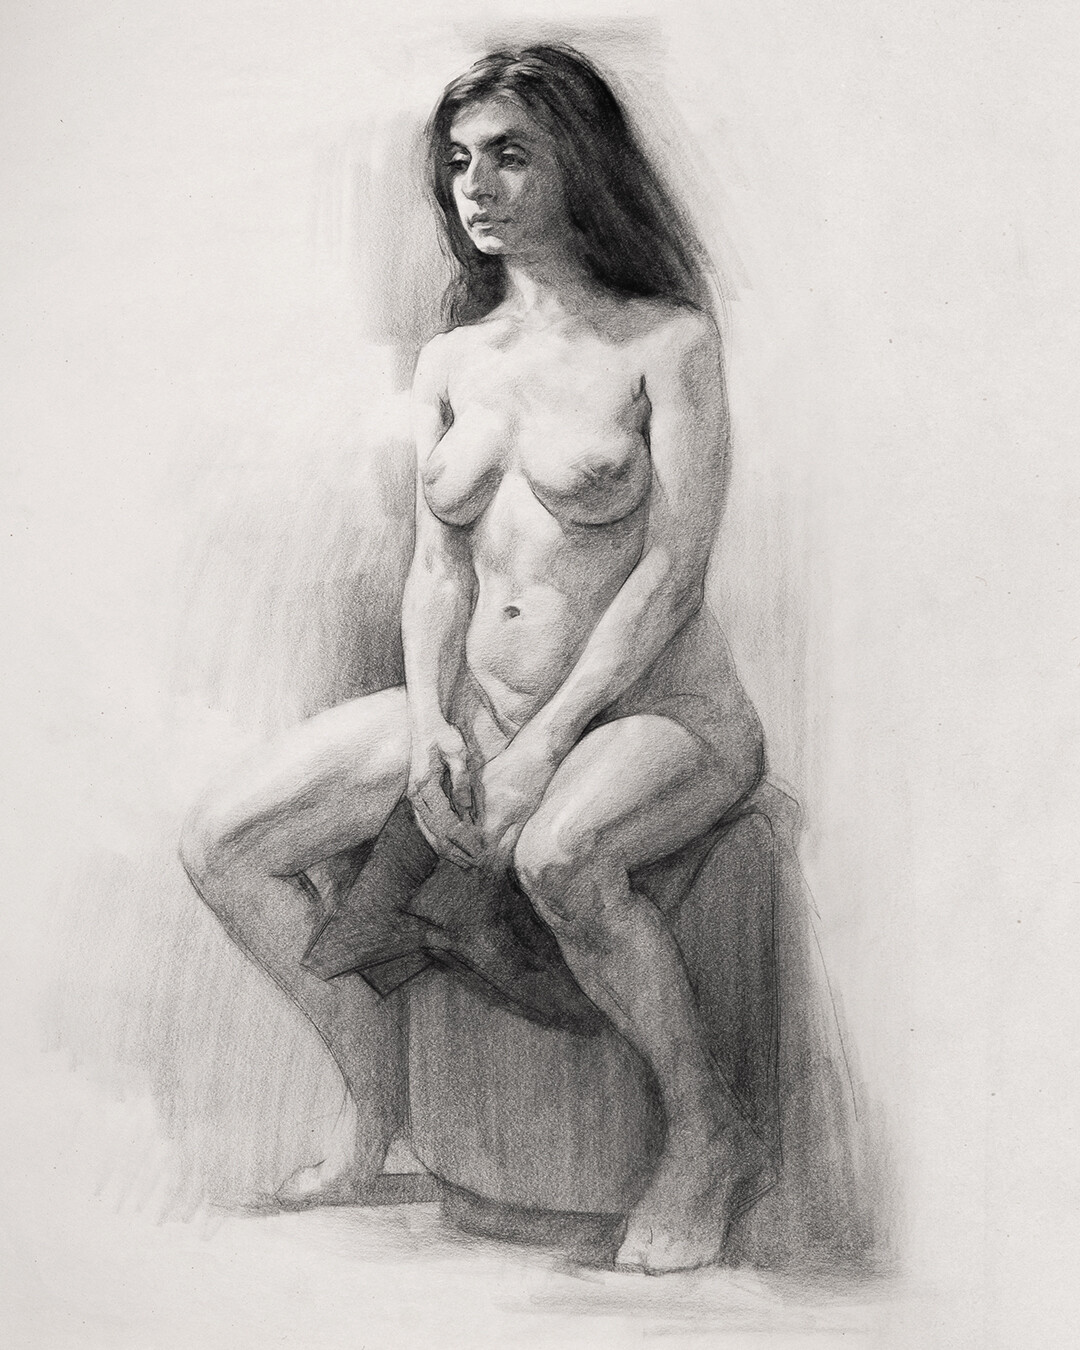 Naked drawings of people